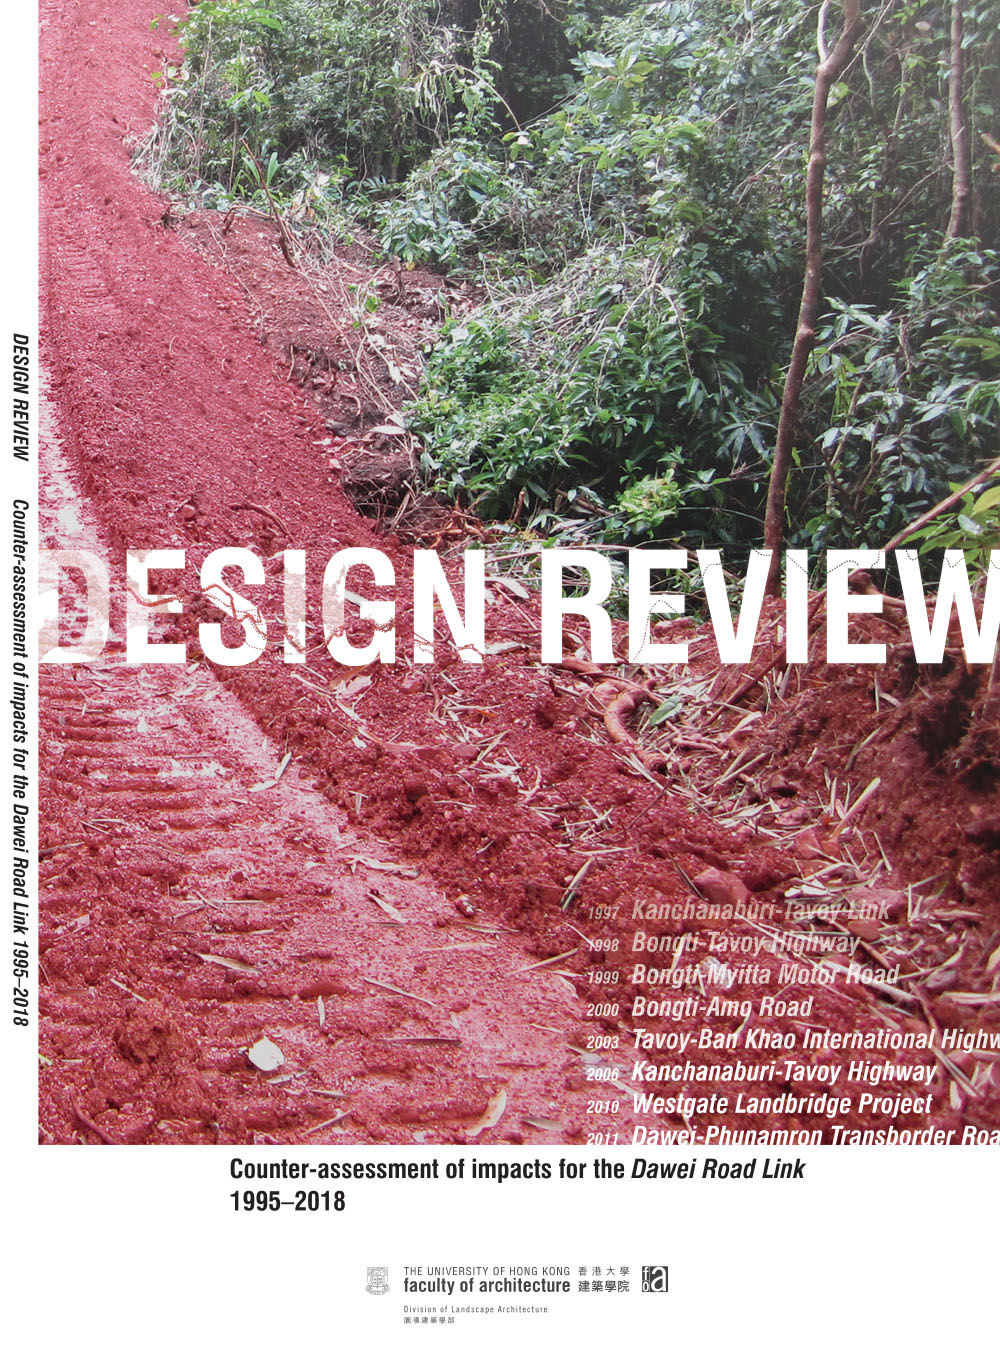 Design Review: Counter-assessment of impacts for the Dawei Road Link, 1995-2018 (Report), 2019.